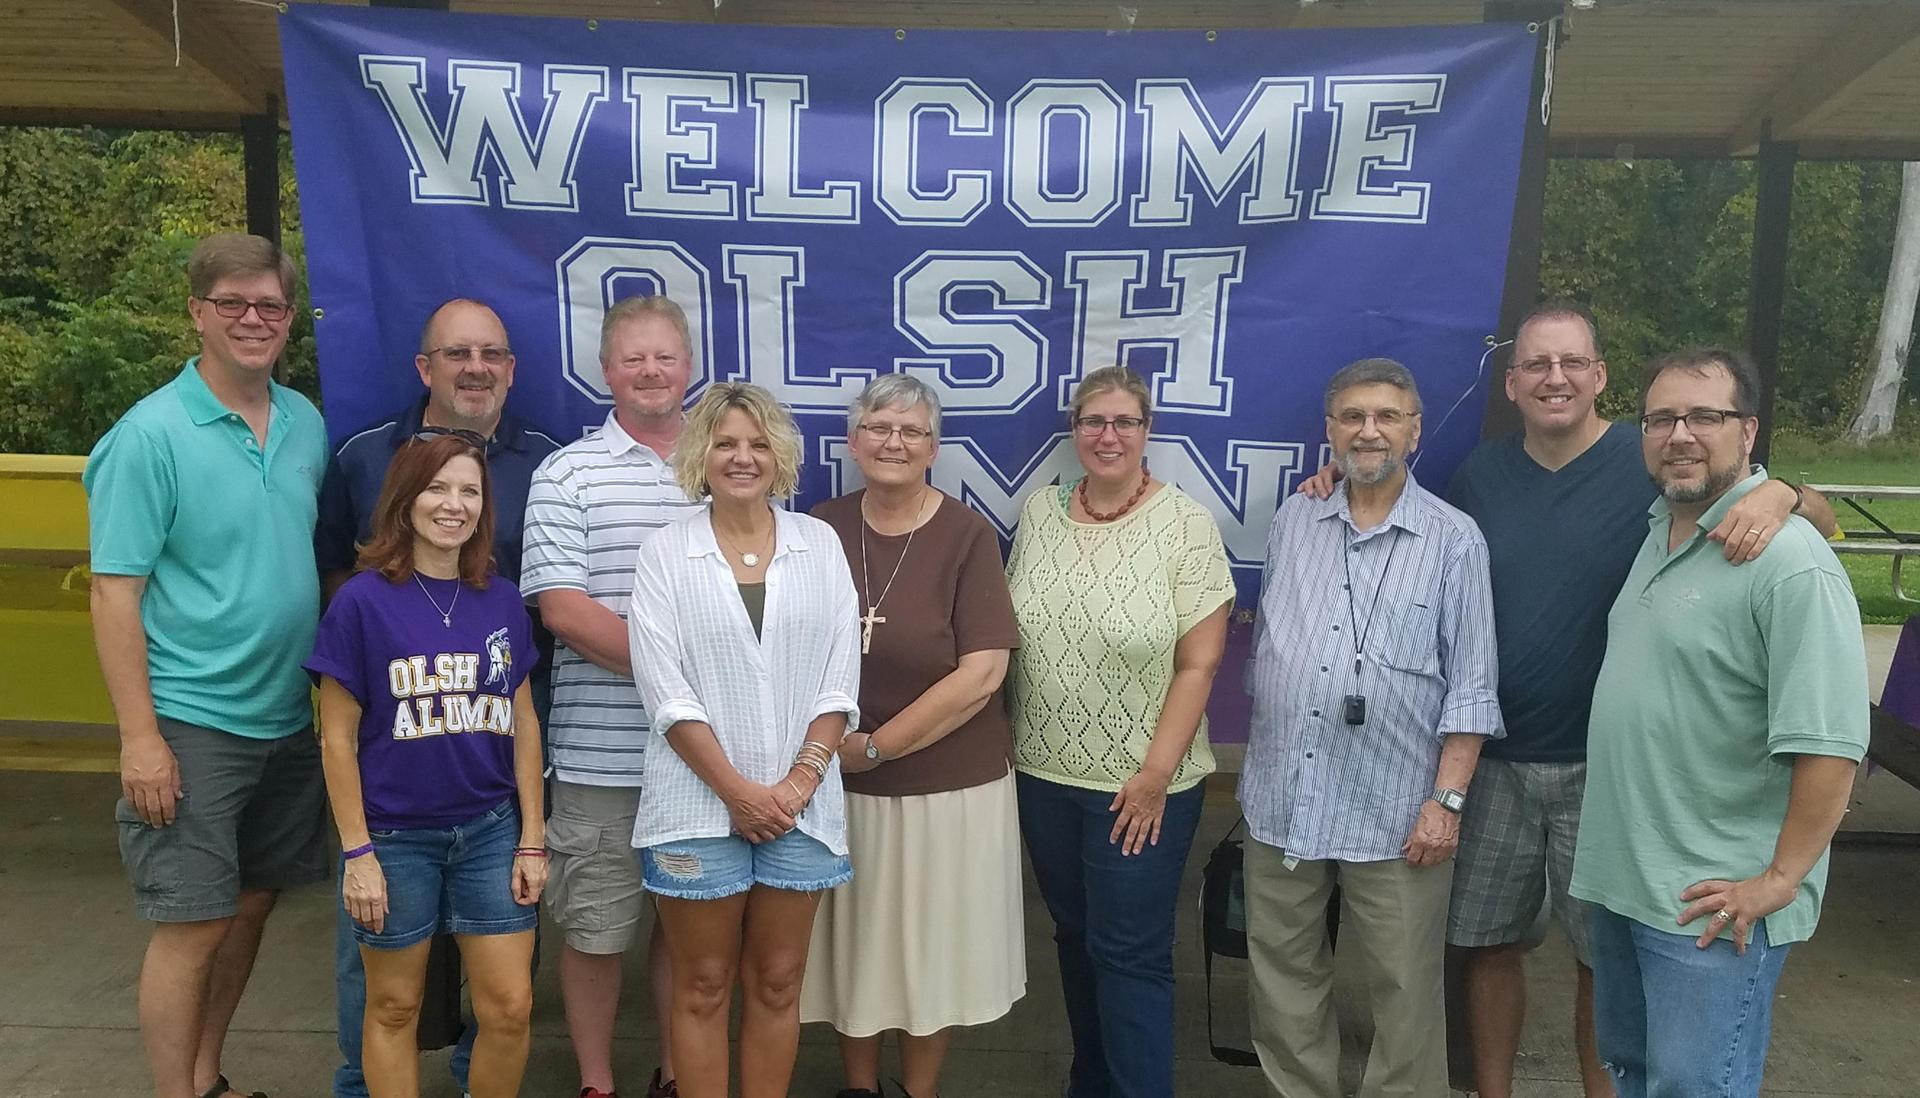 Members of the OLSH class of 1987 pose with Sr. Francine and Mr. M at their reunion